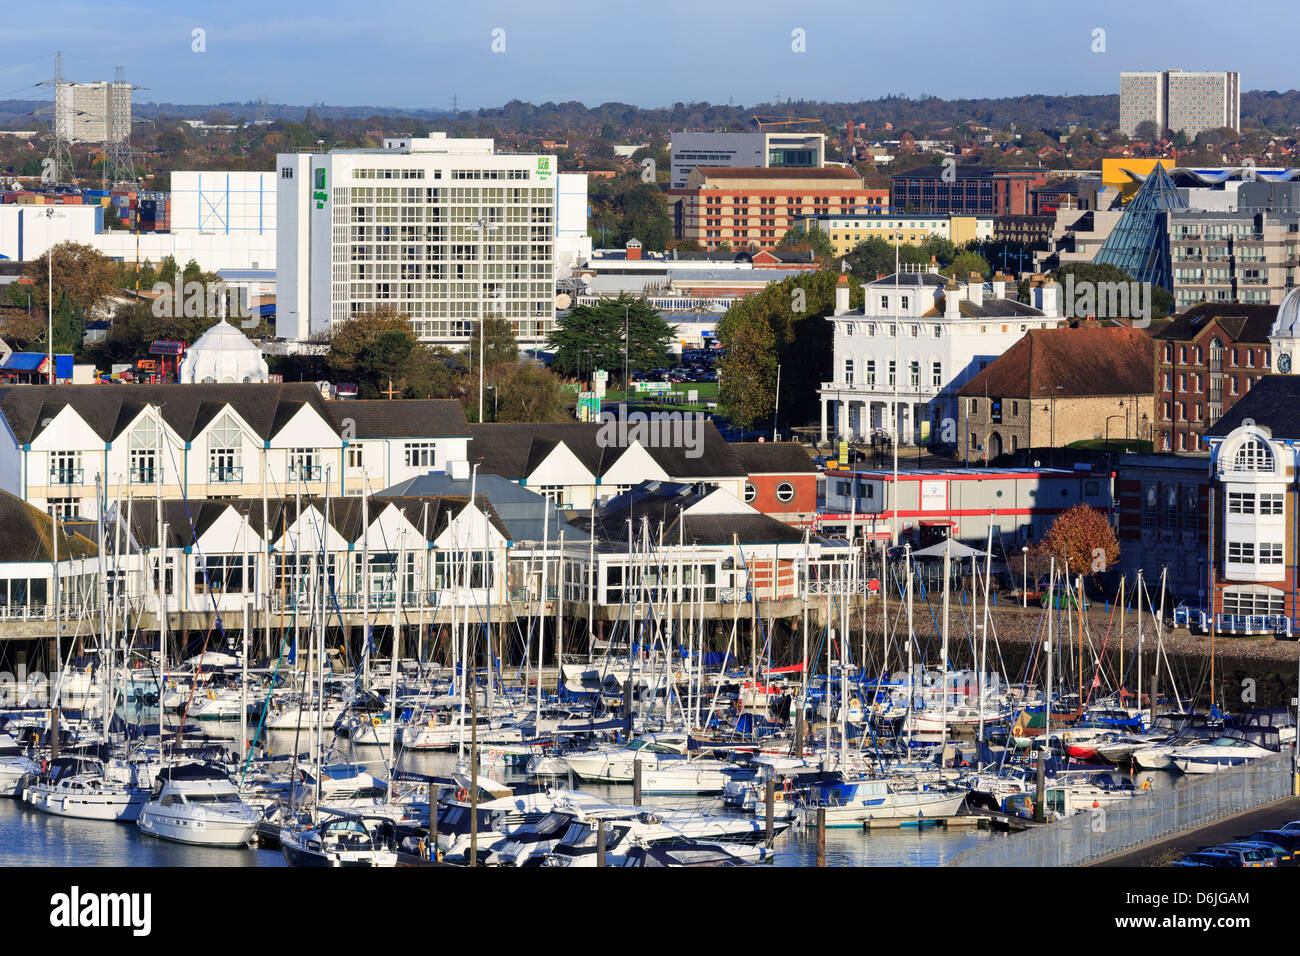 Town Quay and yacht marina, Southampton, Hampshire, England, United Kingdom, Europe - Stock Image